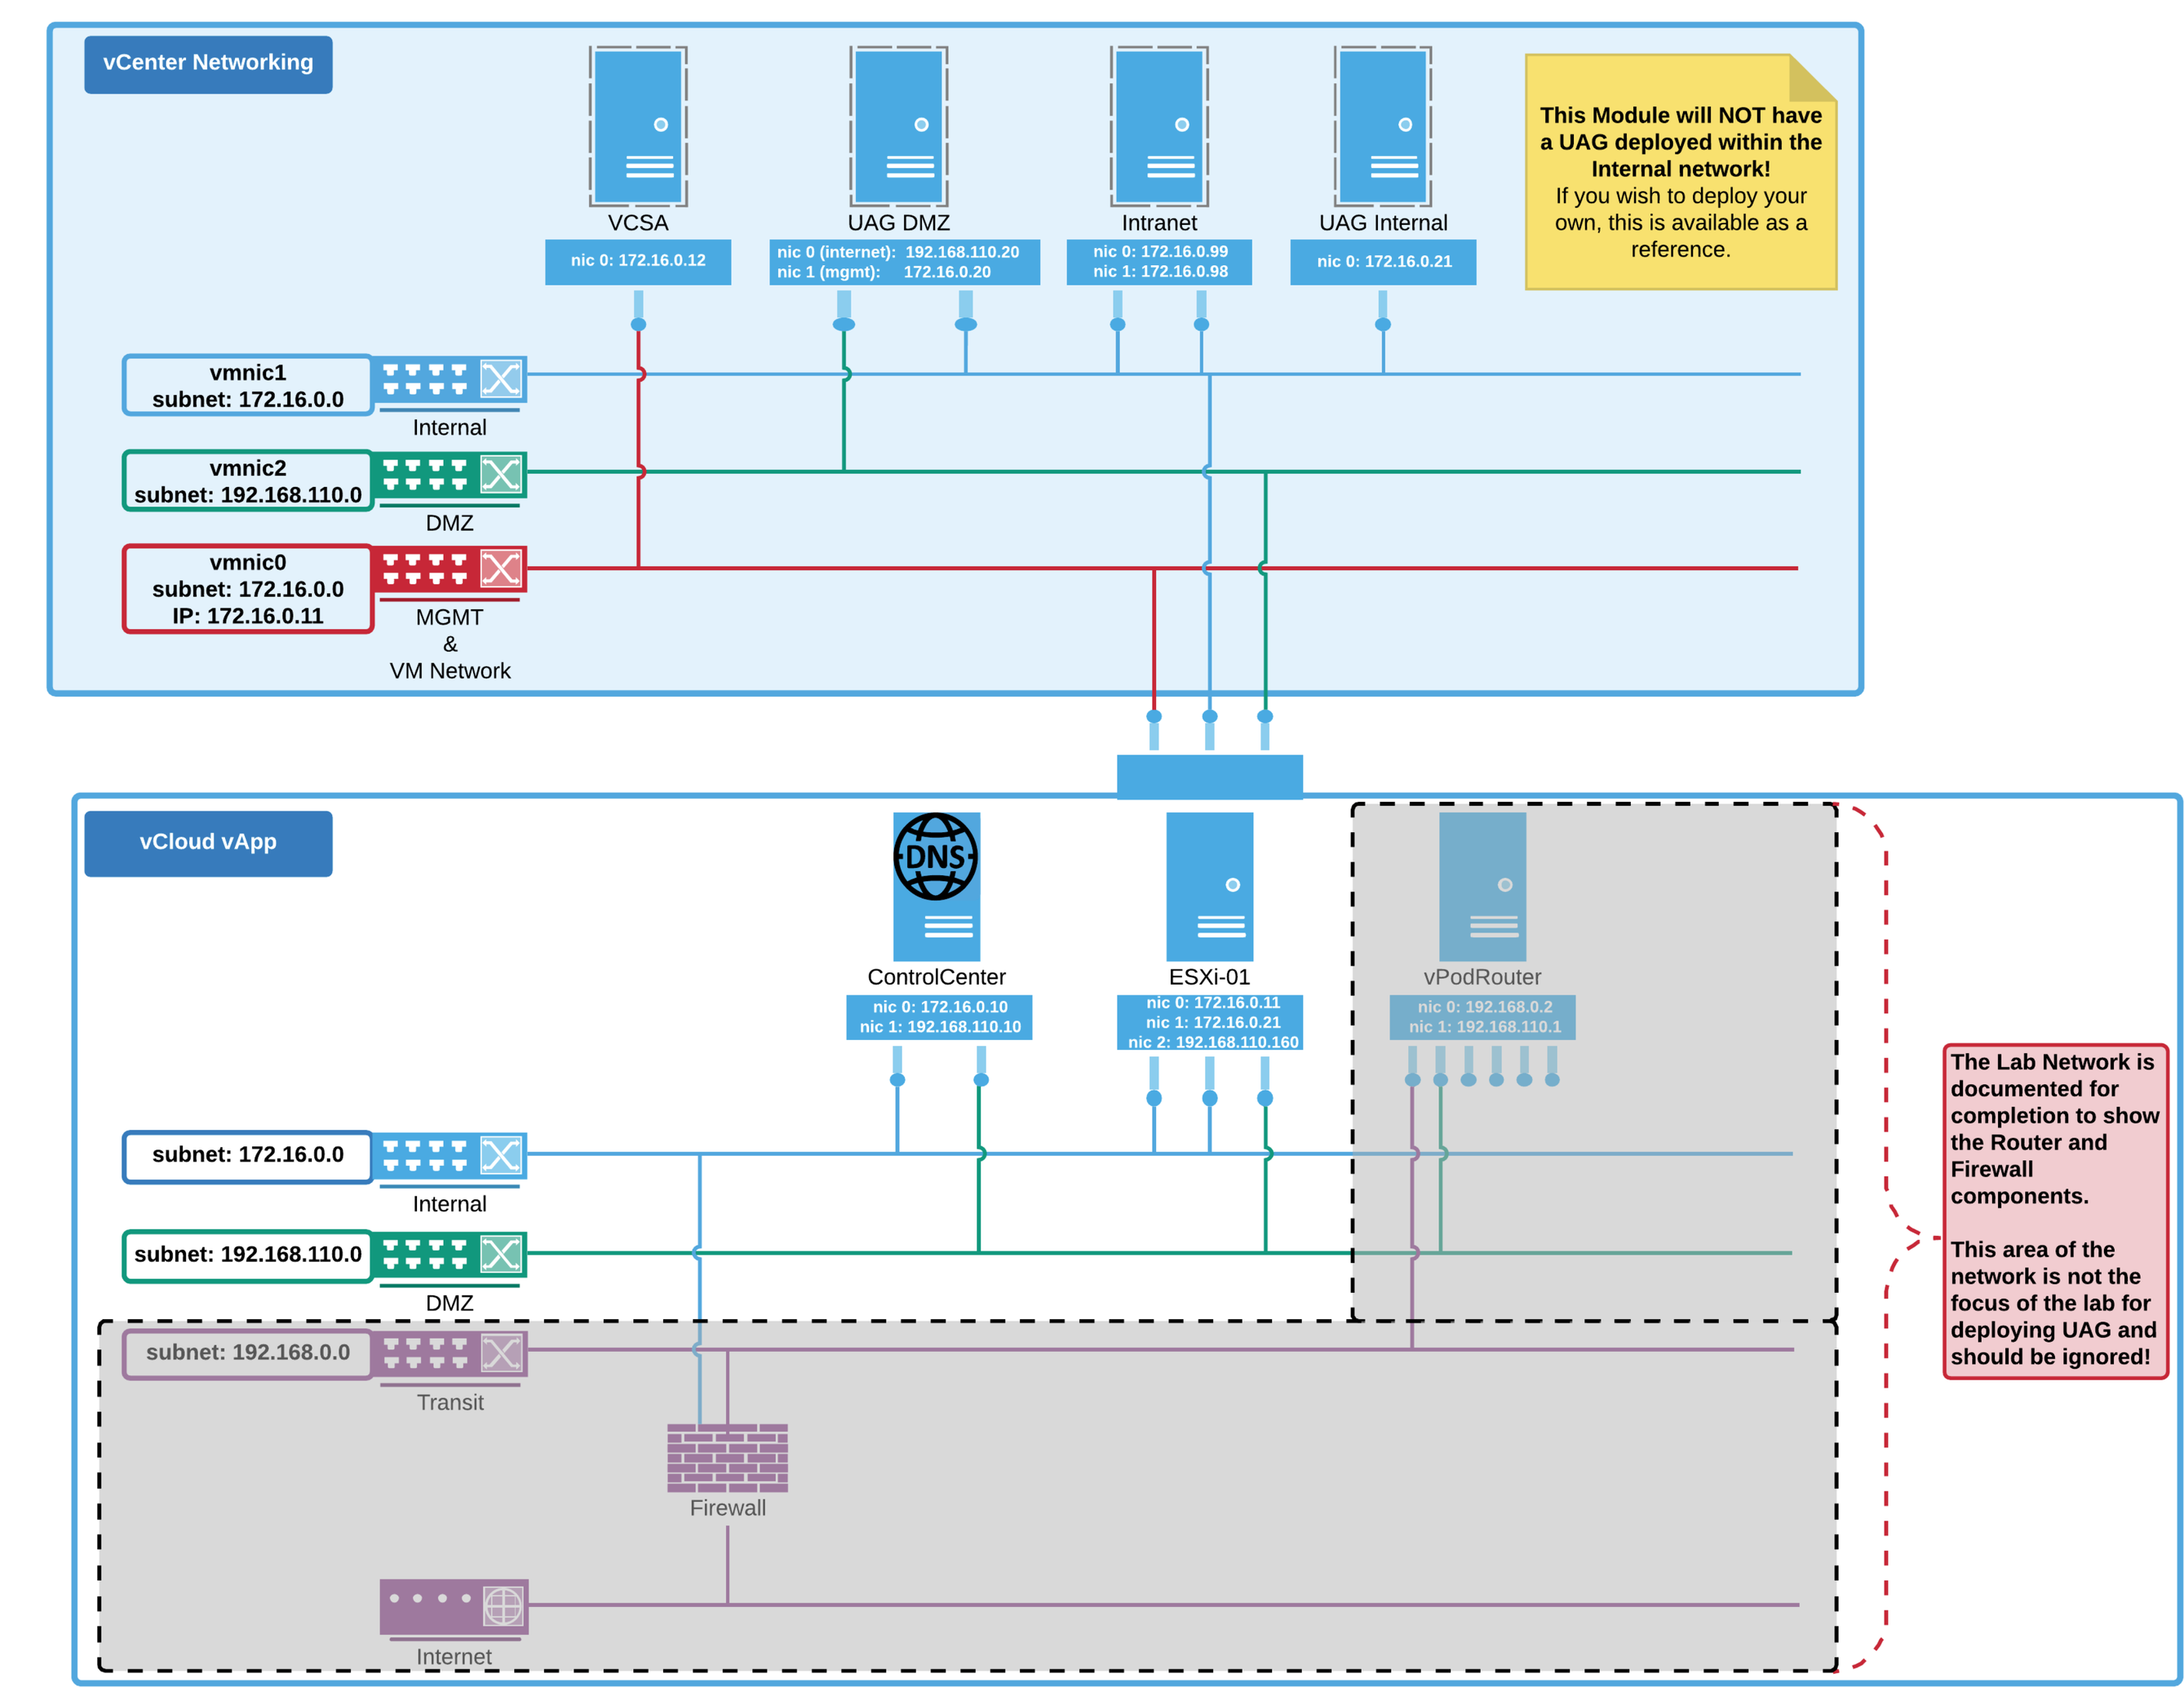 PowerShell Deployment of Unified Access Gateway (UAG) on vSphere with Two NICs Architecture (vmware unified access gateway deployment, vmware unified access gateway implementation, aws console url)